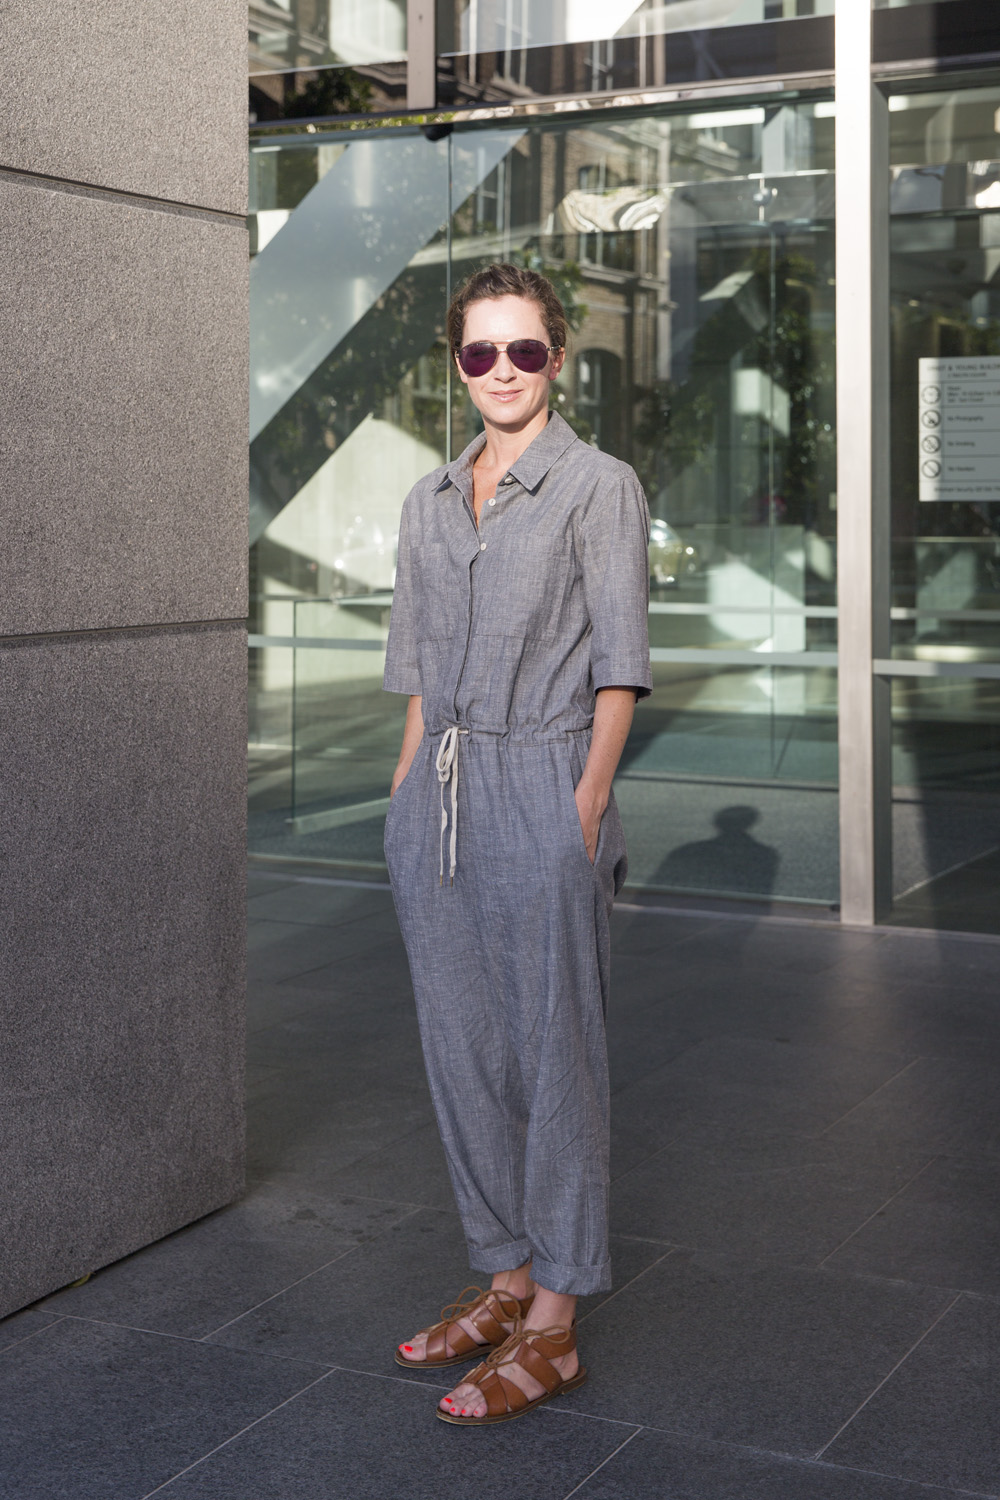 Anna wears jumpsuit by Juliette Hogan, sandals by Windsor Smith and Sass and Bide sunglasses.